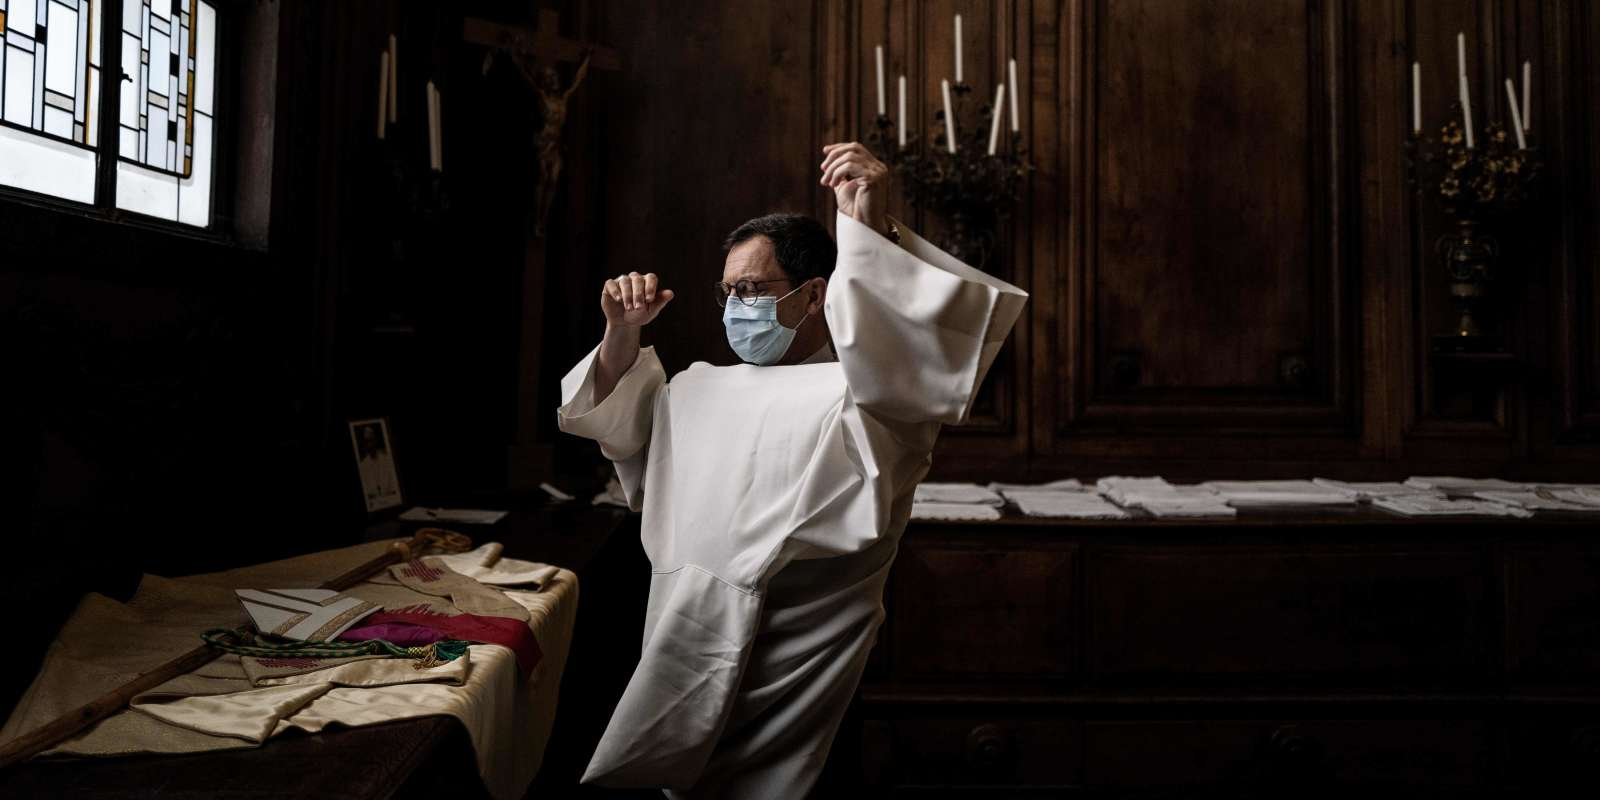 French bishop Monsignor Emmanuel Gobilliard prepares to lead the first mass in the Lyon Saint-Jean cathedral since the beginning of the lock down due to Covid 19 pandemic, on May 23, 2020. France went into lockdown on March 17, to curb the spread of COVID-19. / AFP / JEFF PACHOUD